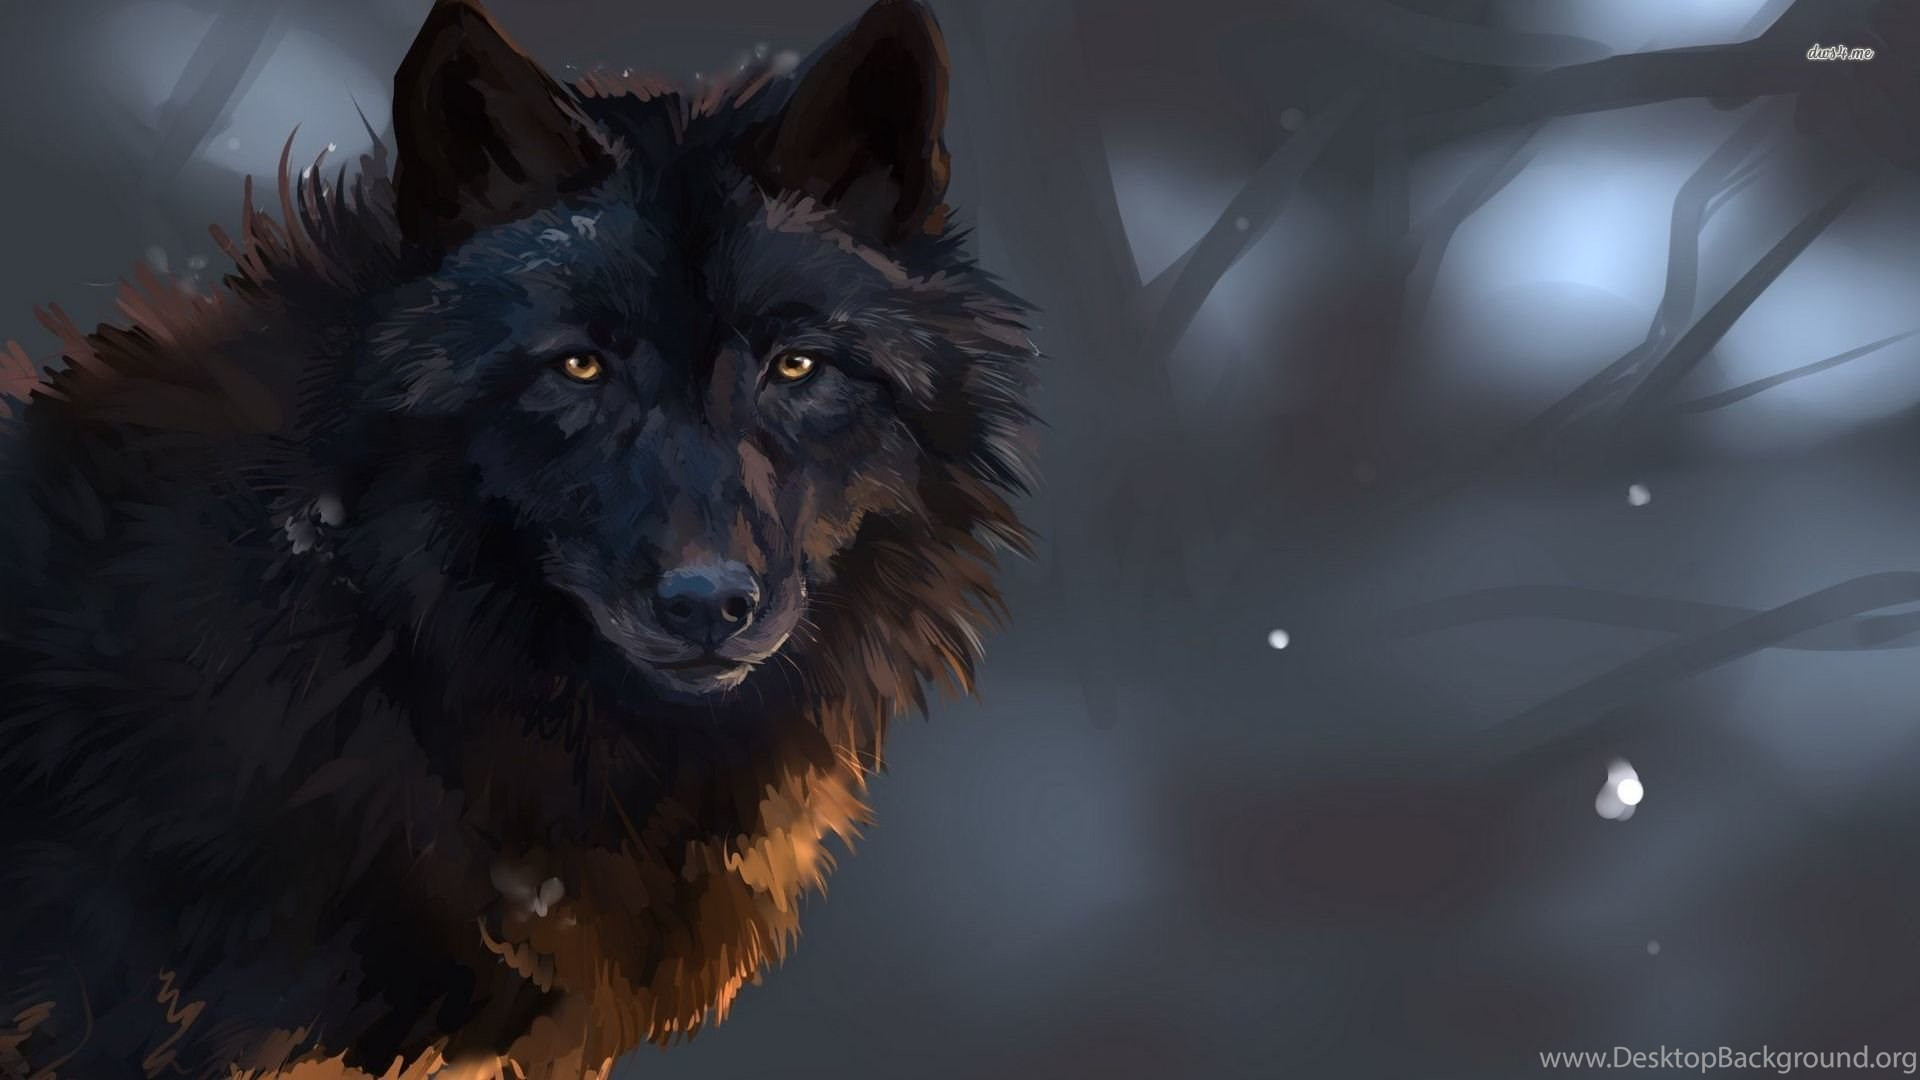 Staring Black Wolf Wallpapers Digital Art Wallpapers Desktop Background